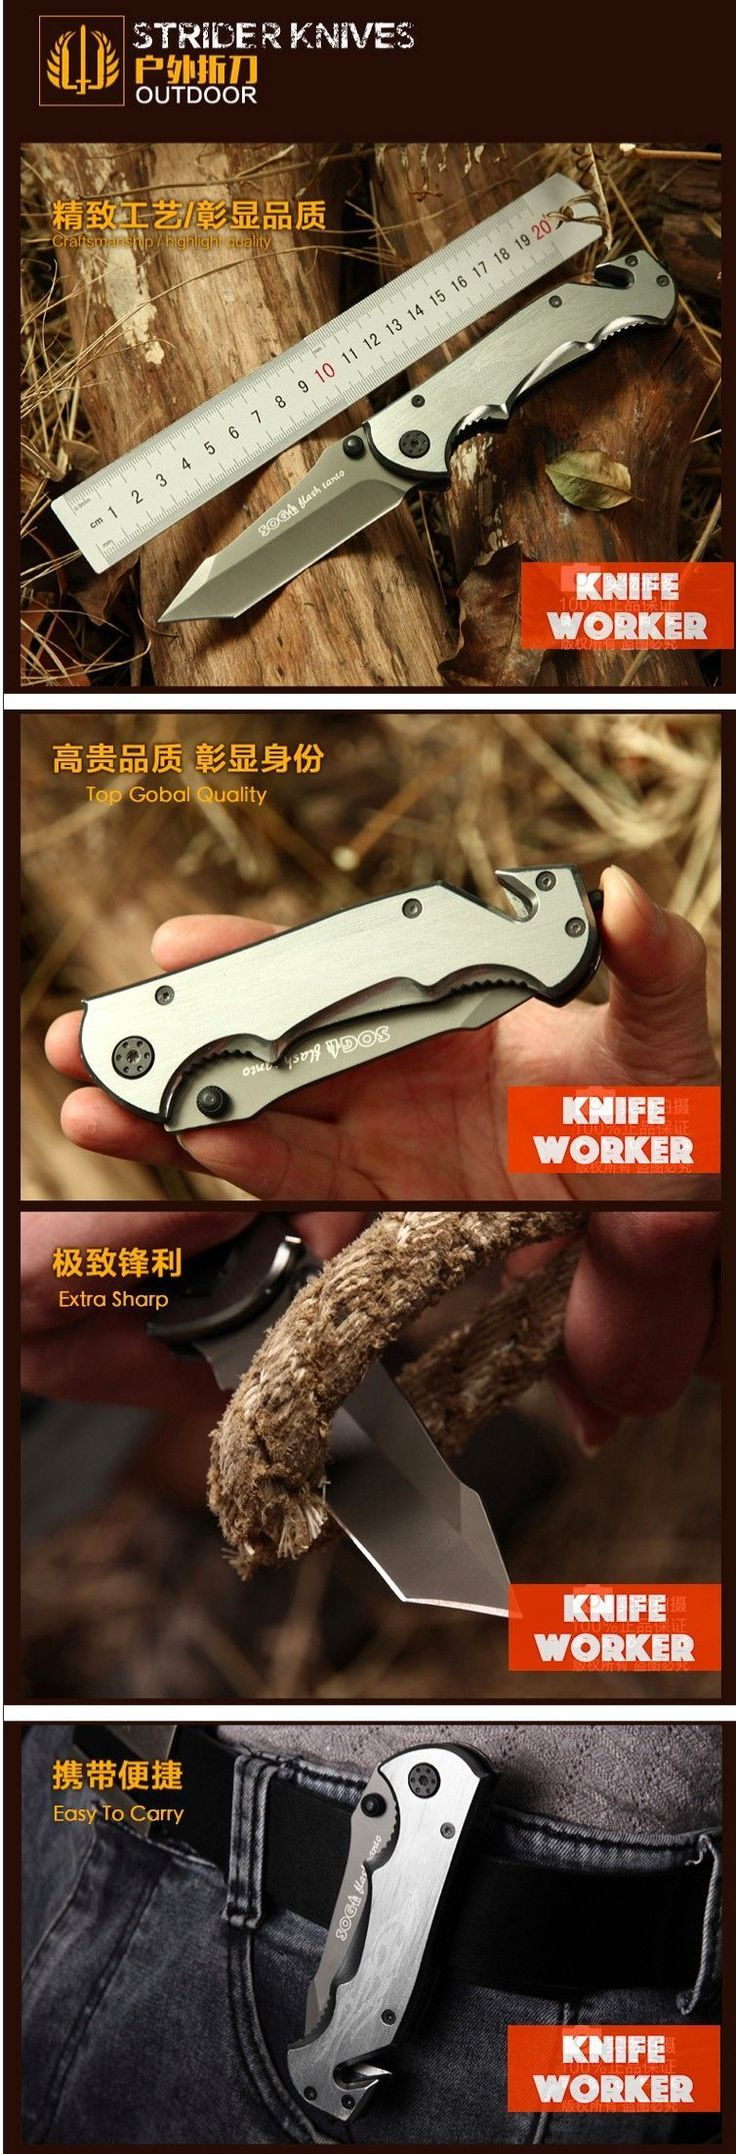 Worldwide free freight - SOG Firebird Folding Blade Knife 21.5cm Camping Knives With Strong 60HRC Utility Survival Knife Tactical Knife D2 G10 Steel